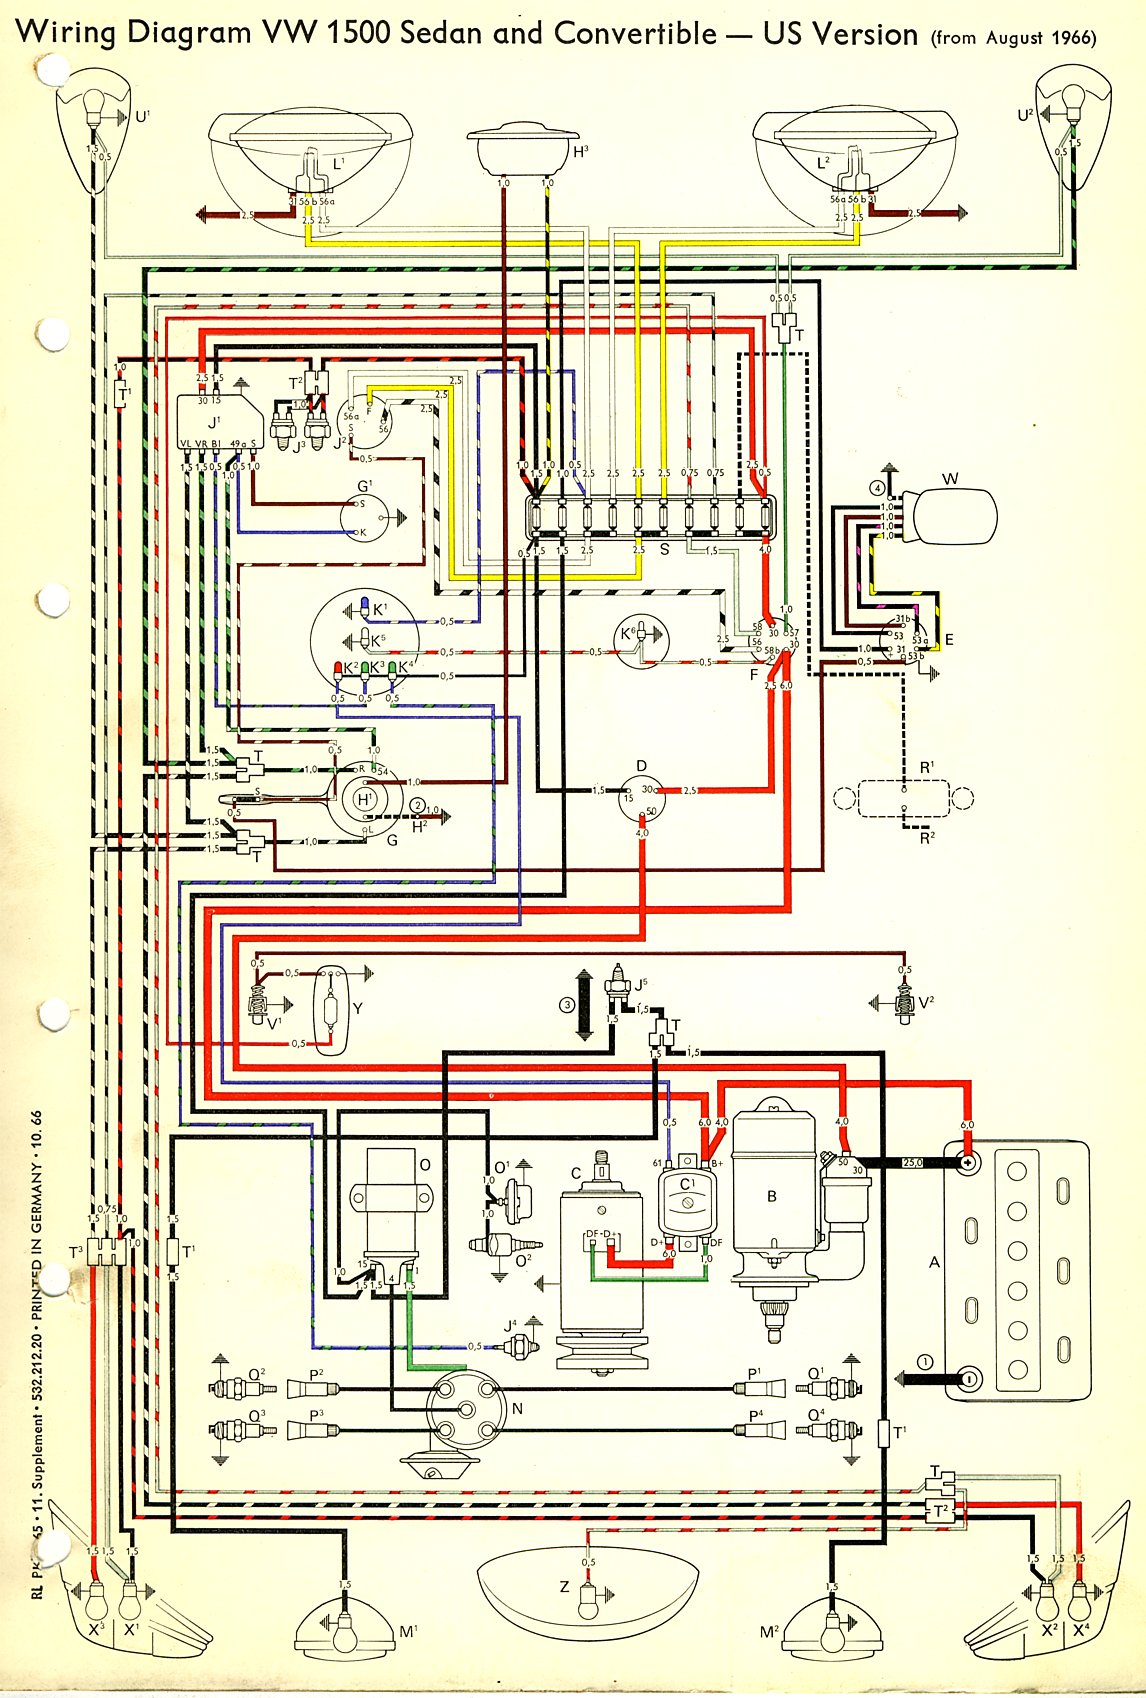 vw beetle wiring diagram uk vw wiring diagrams online 1967 usa 1966 wiring diagram